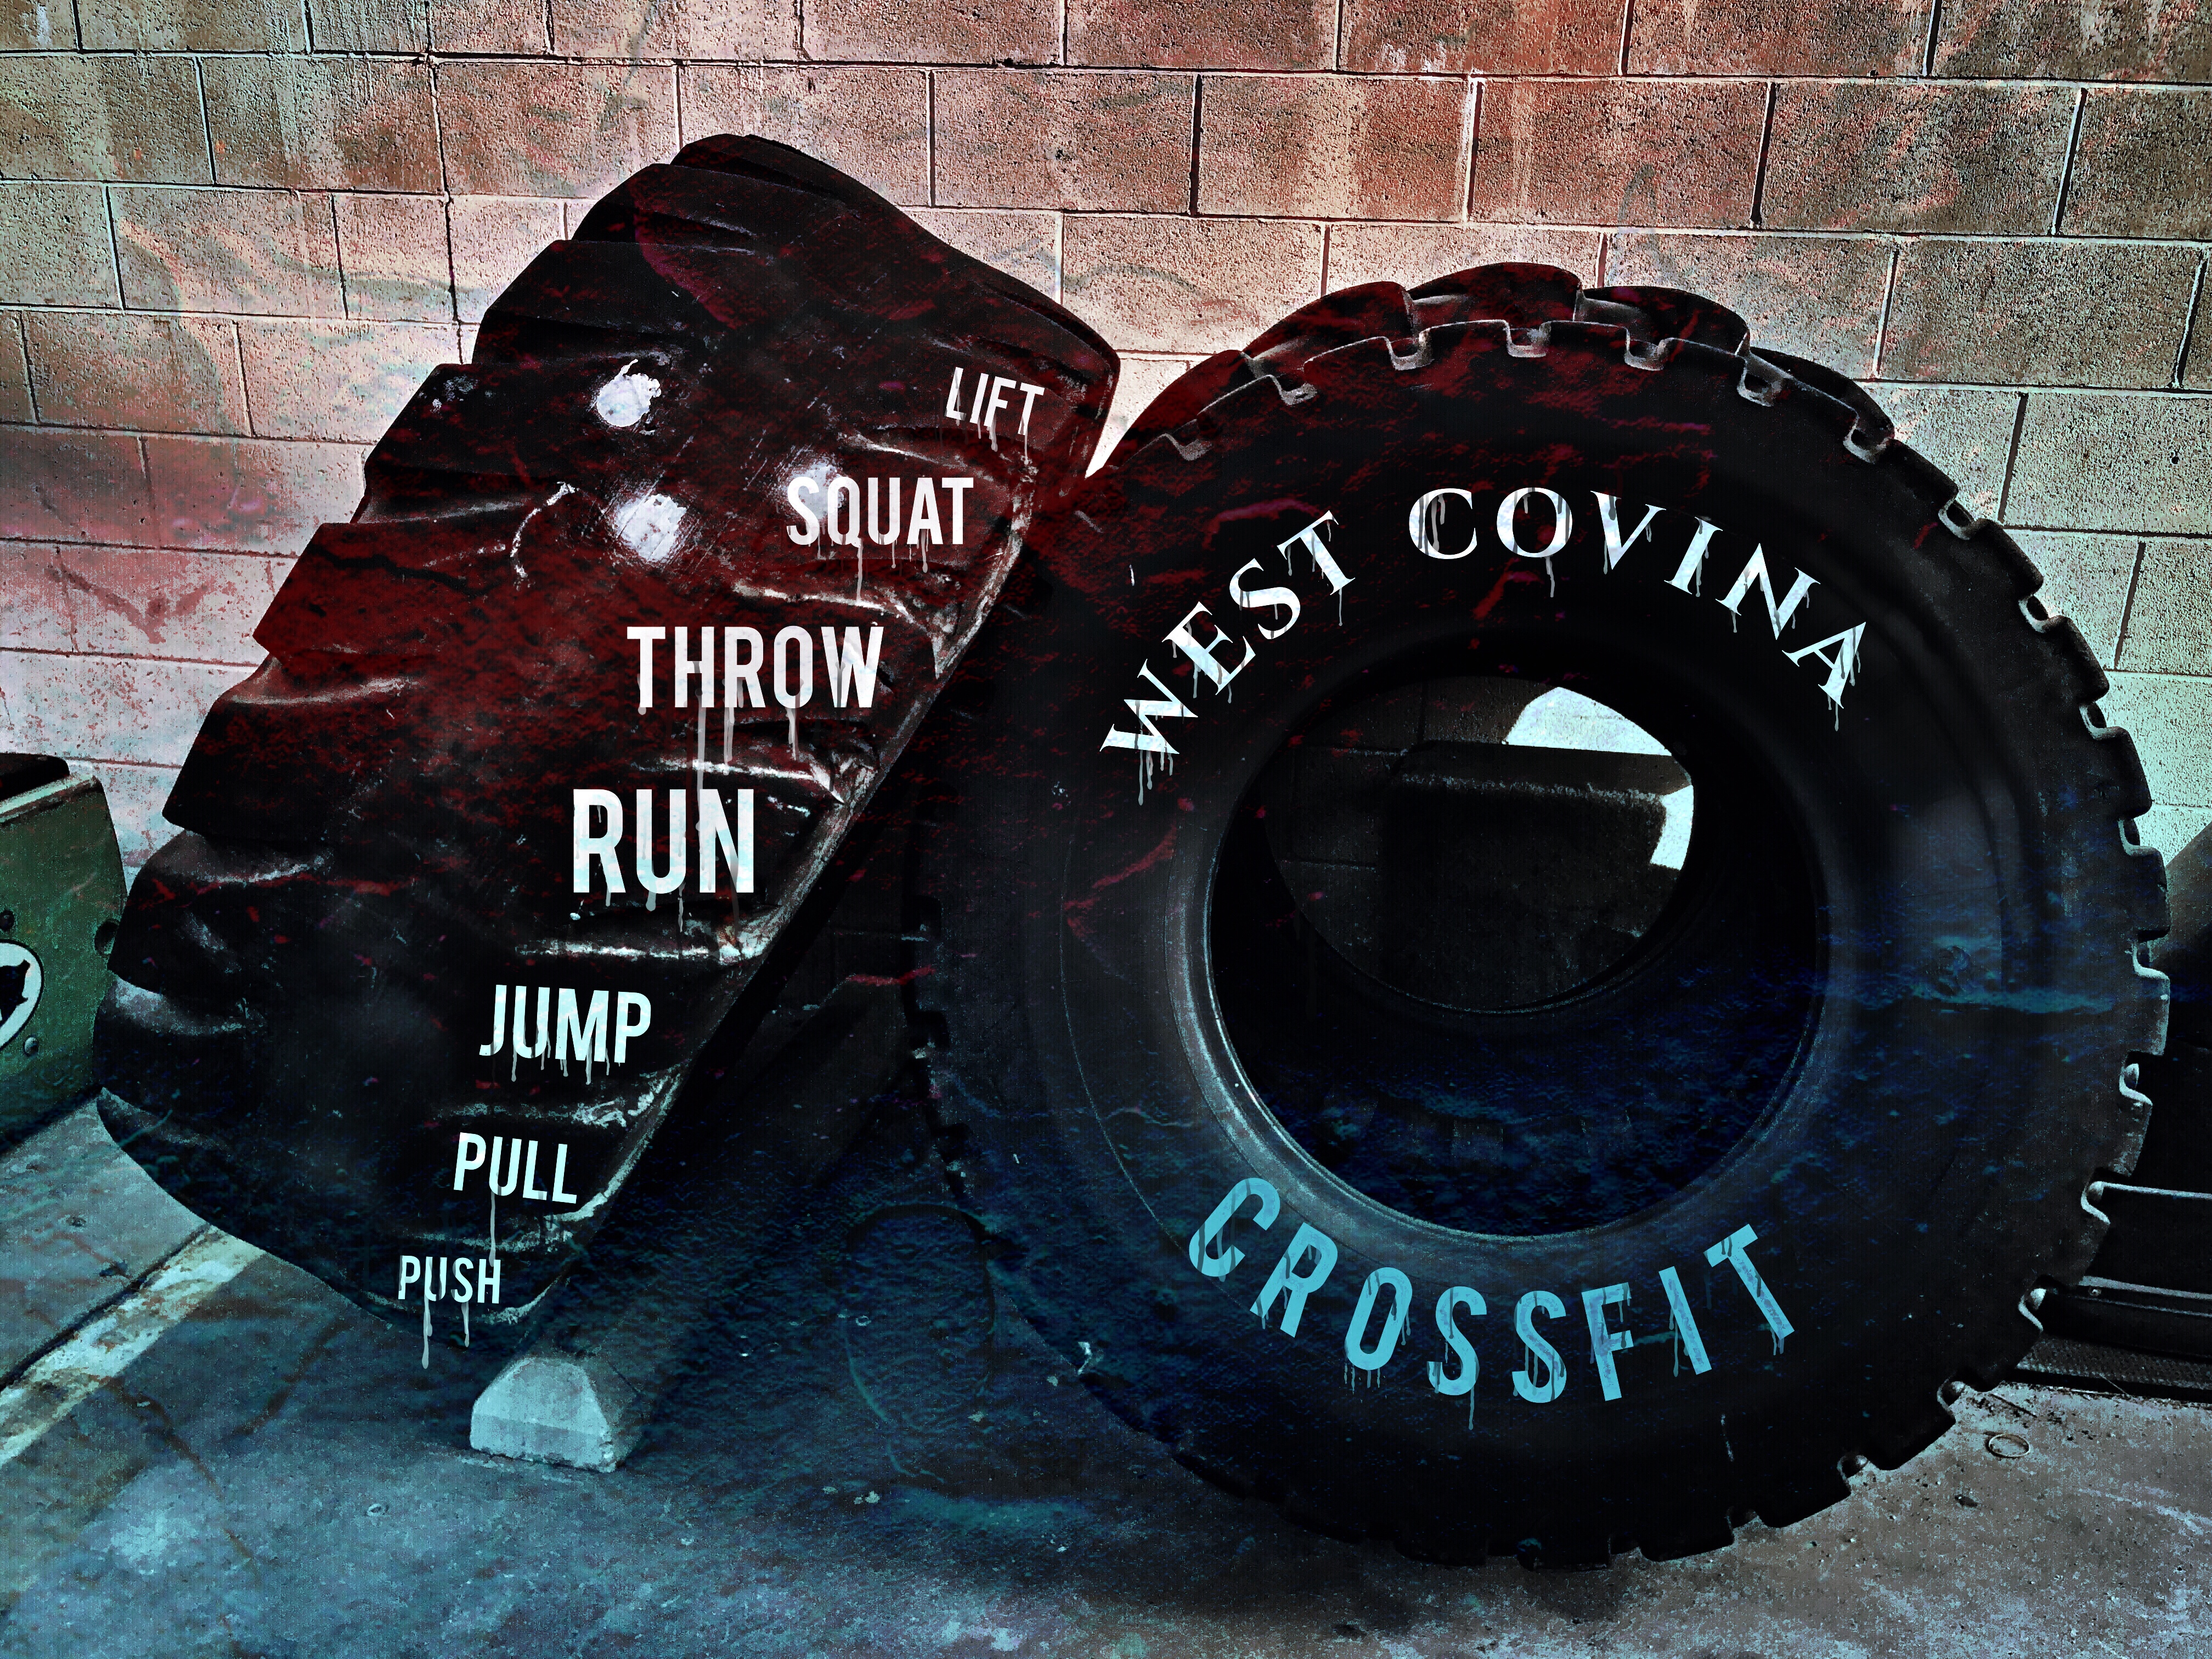 West Covina Crossfit